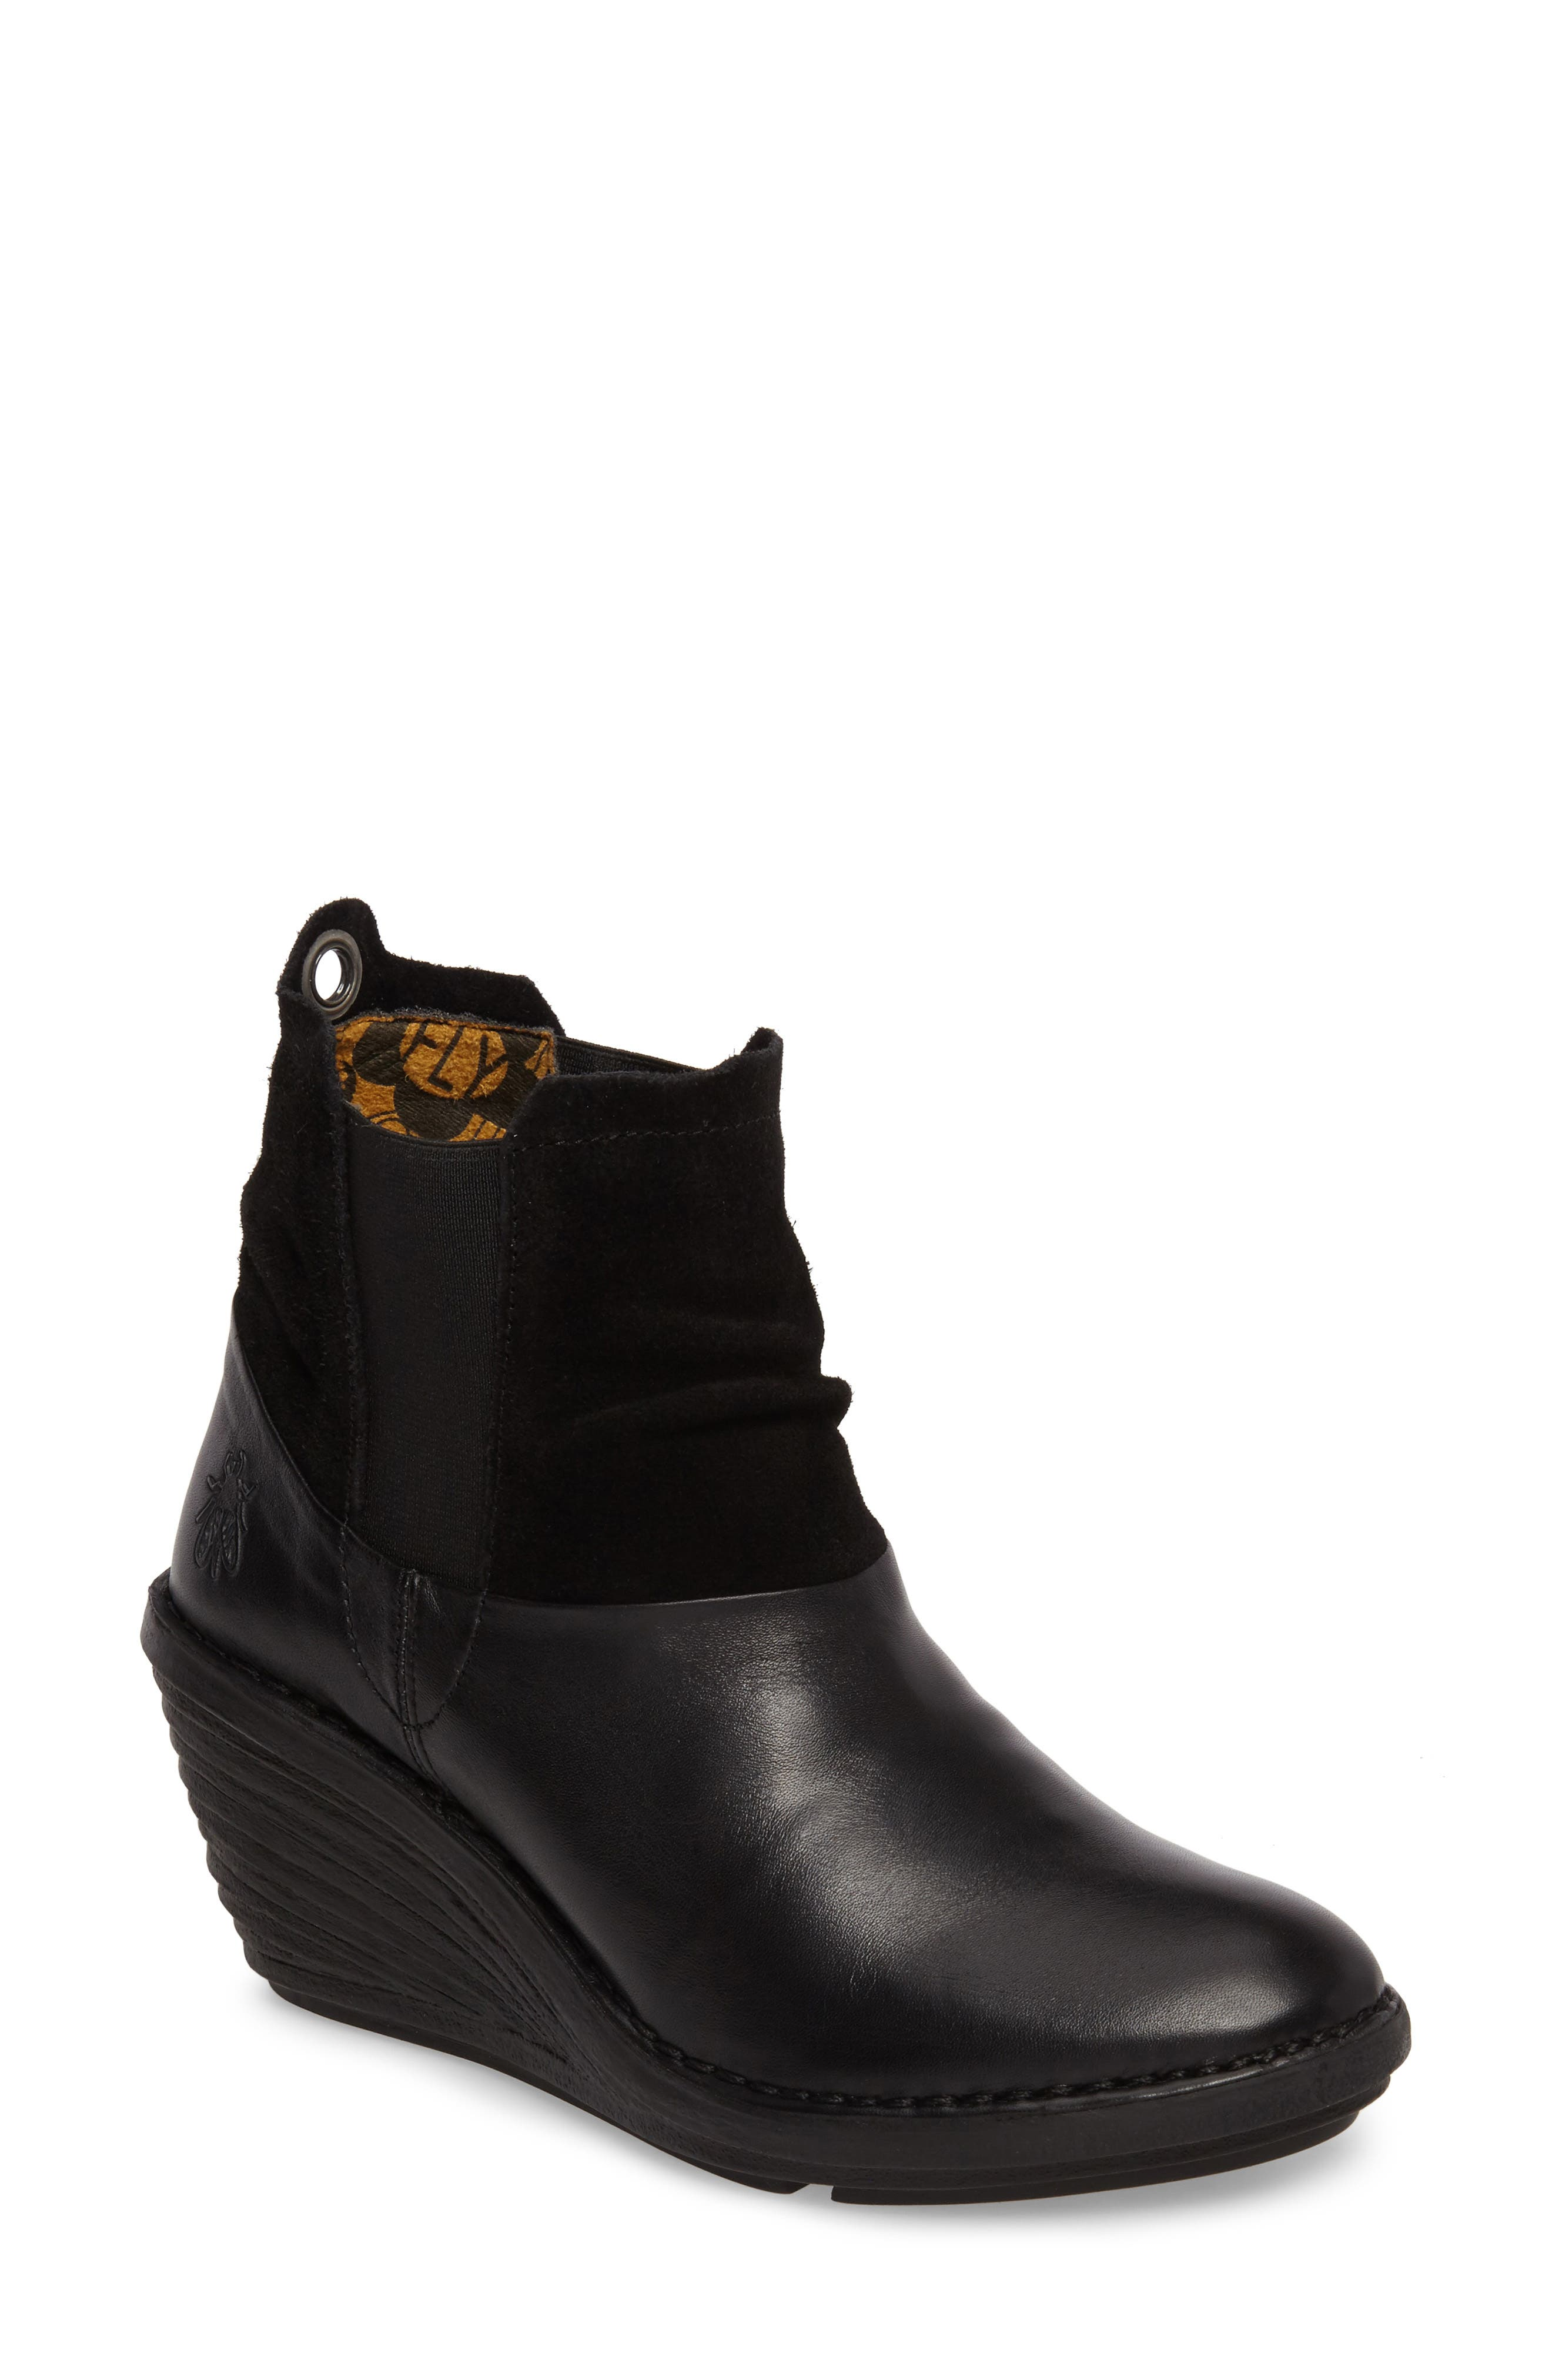 Sula Wedge Bootie,                         Main,                         color, 001